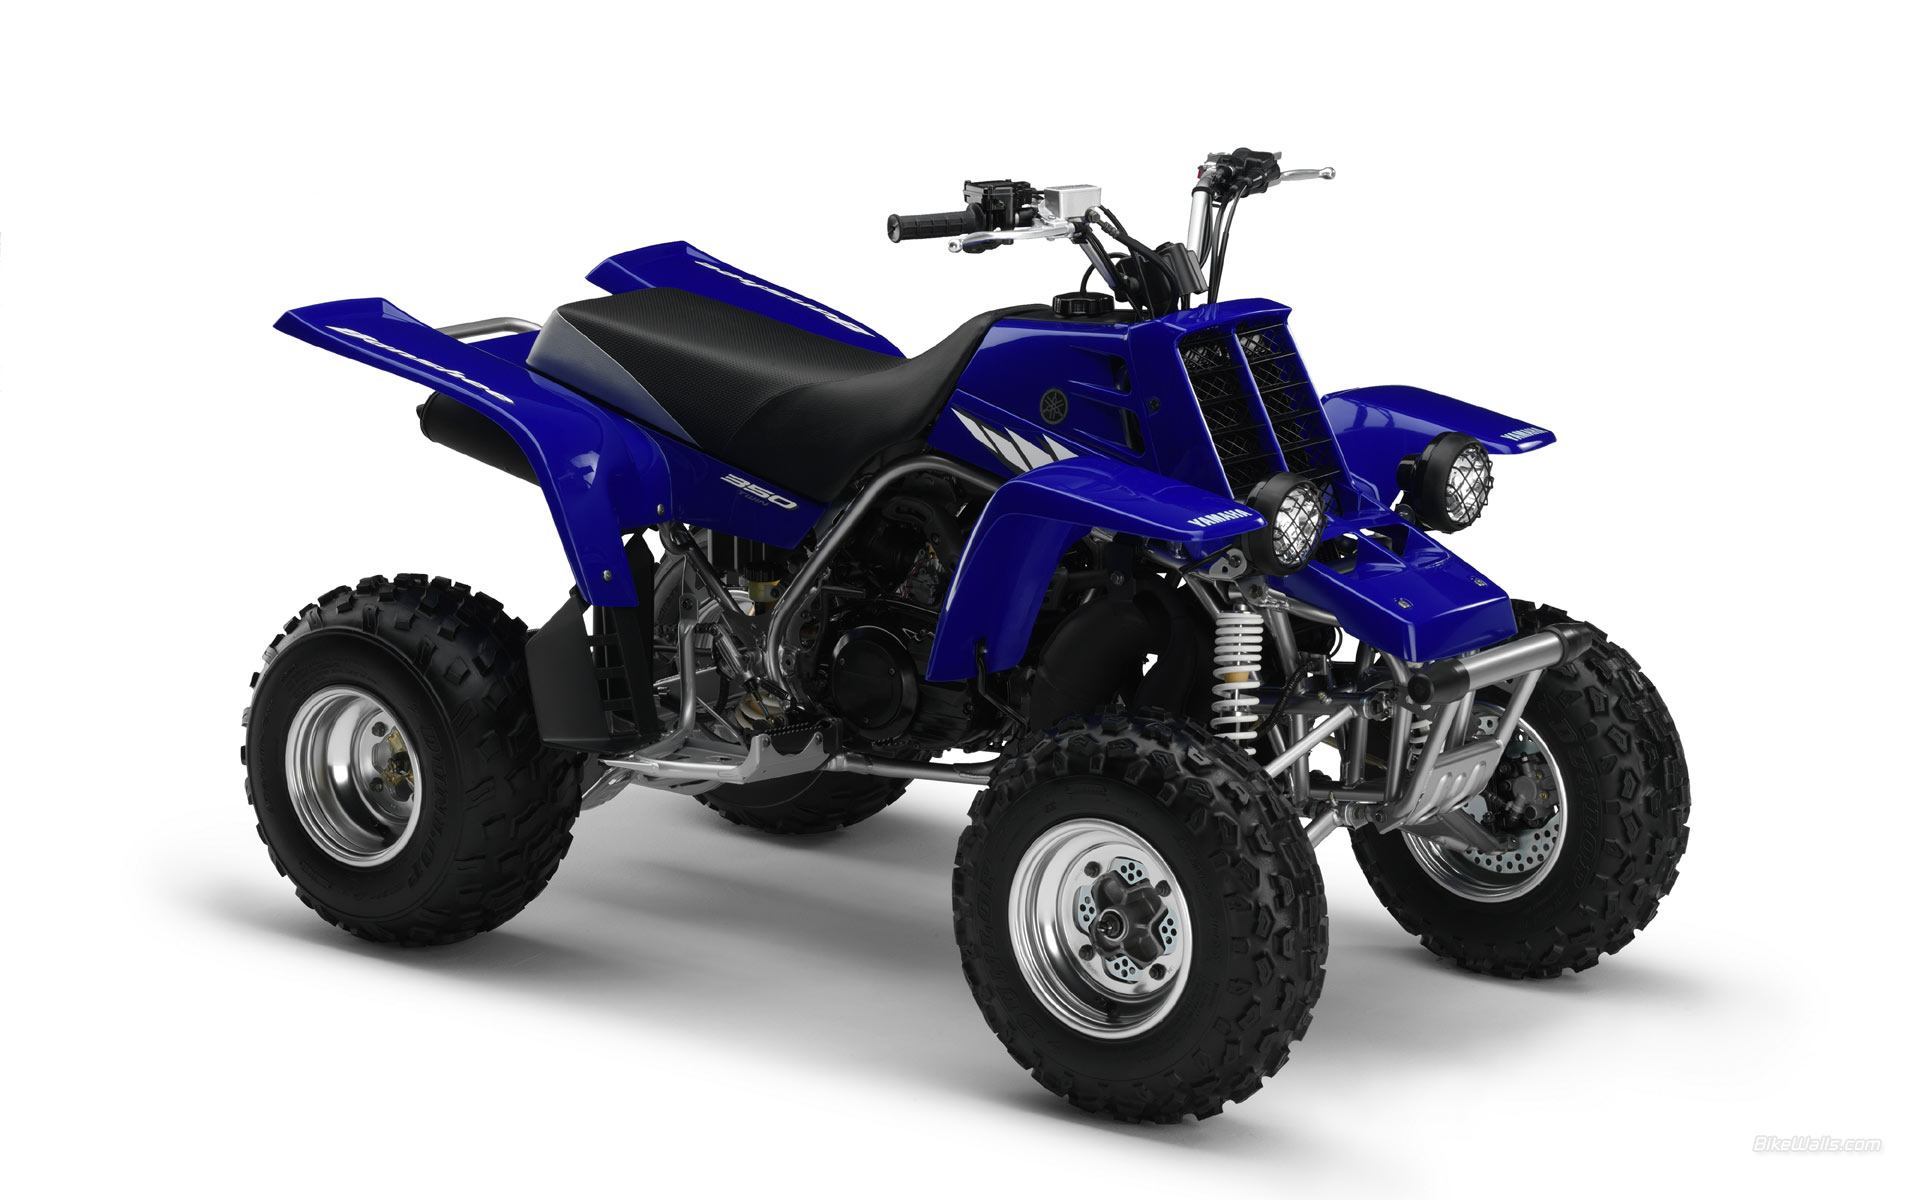 Yamaha Atv Wallpaper 6720 Hd Wallpapers in Bikes   Imagescicom 1920x1200